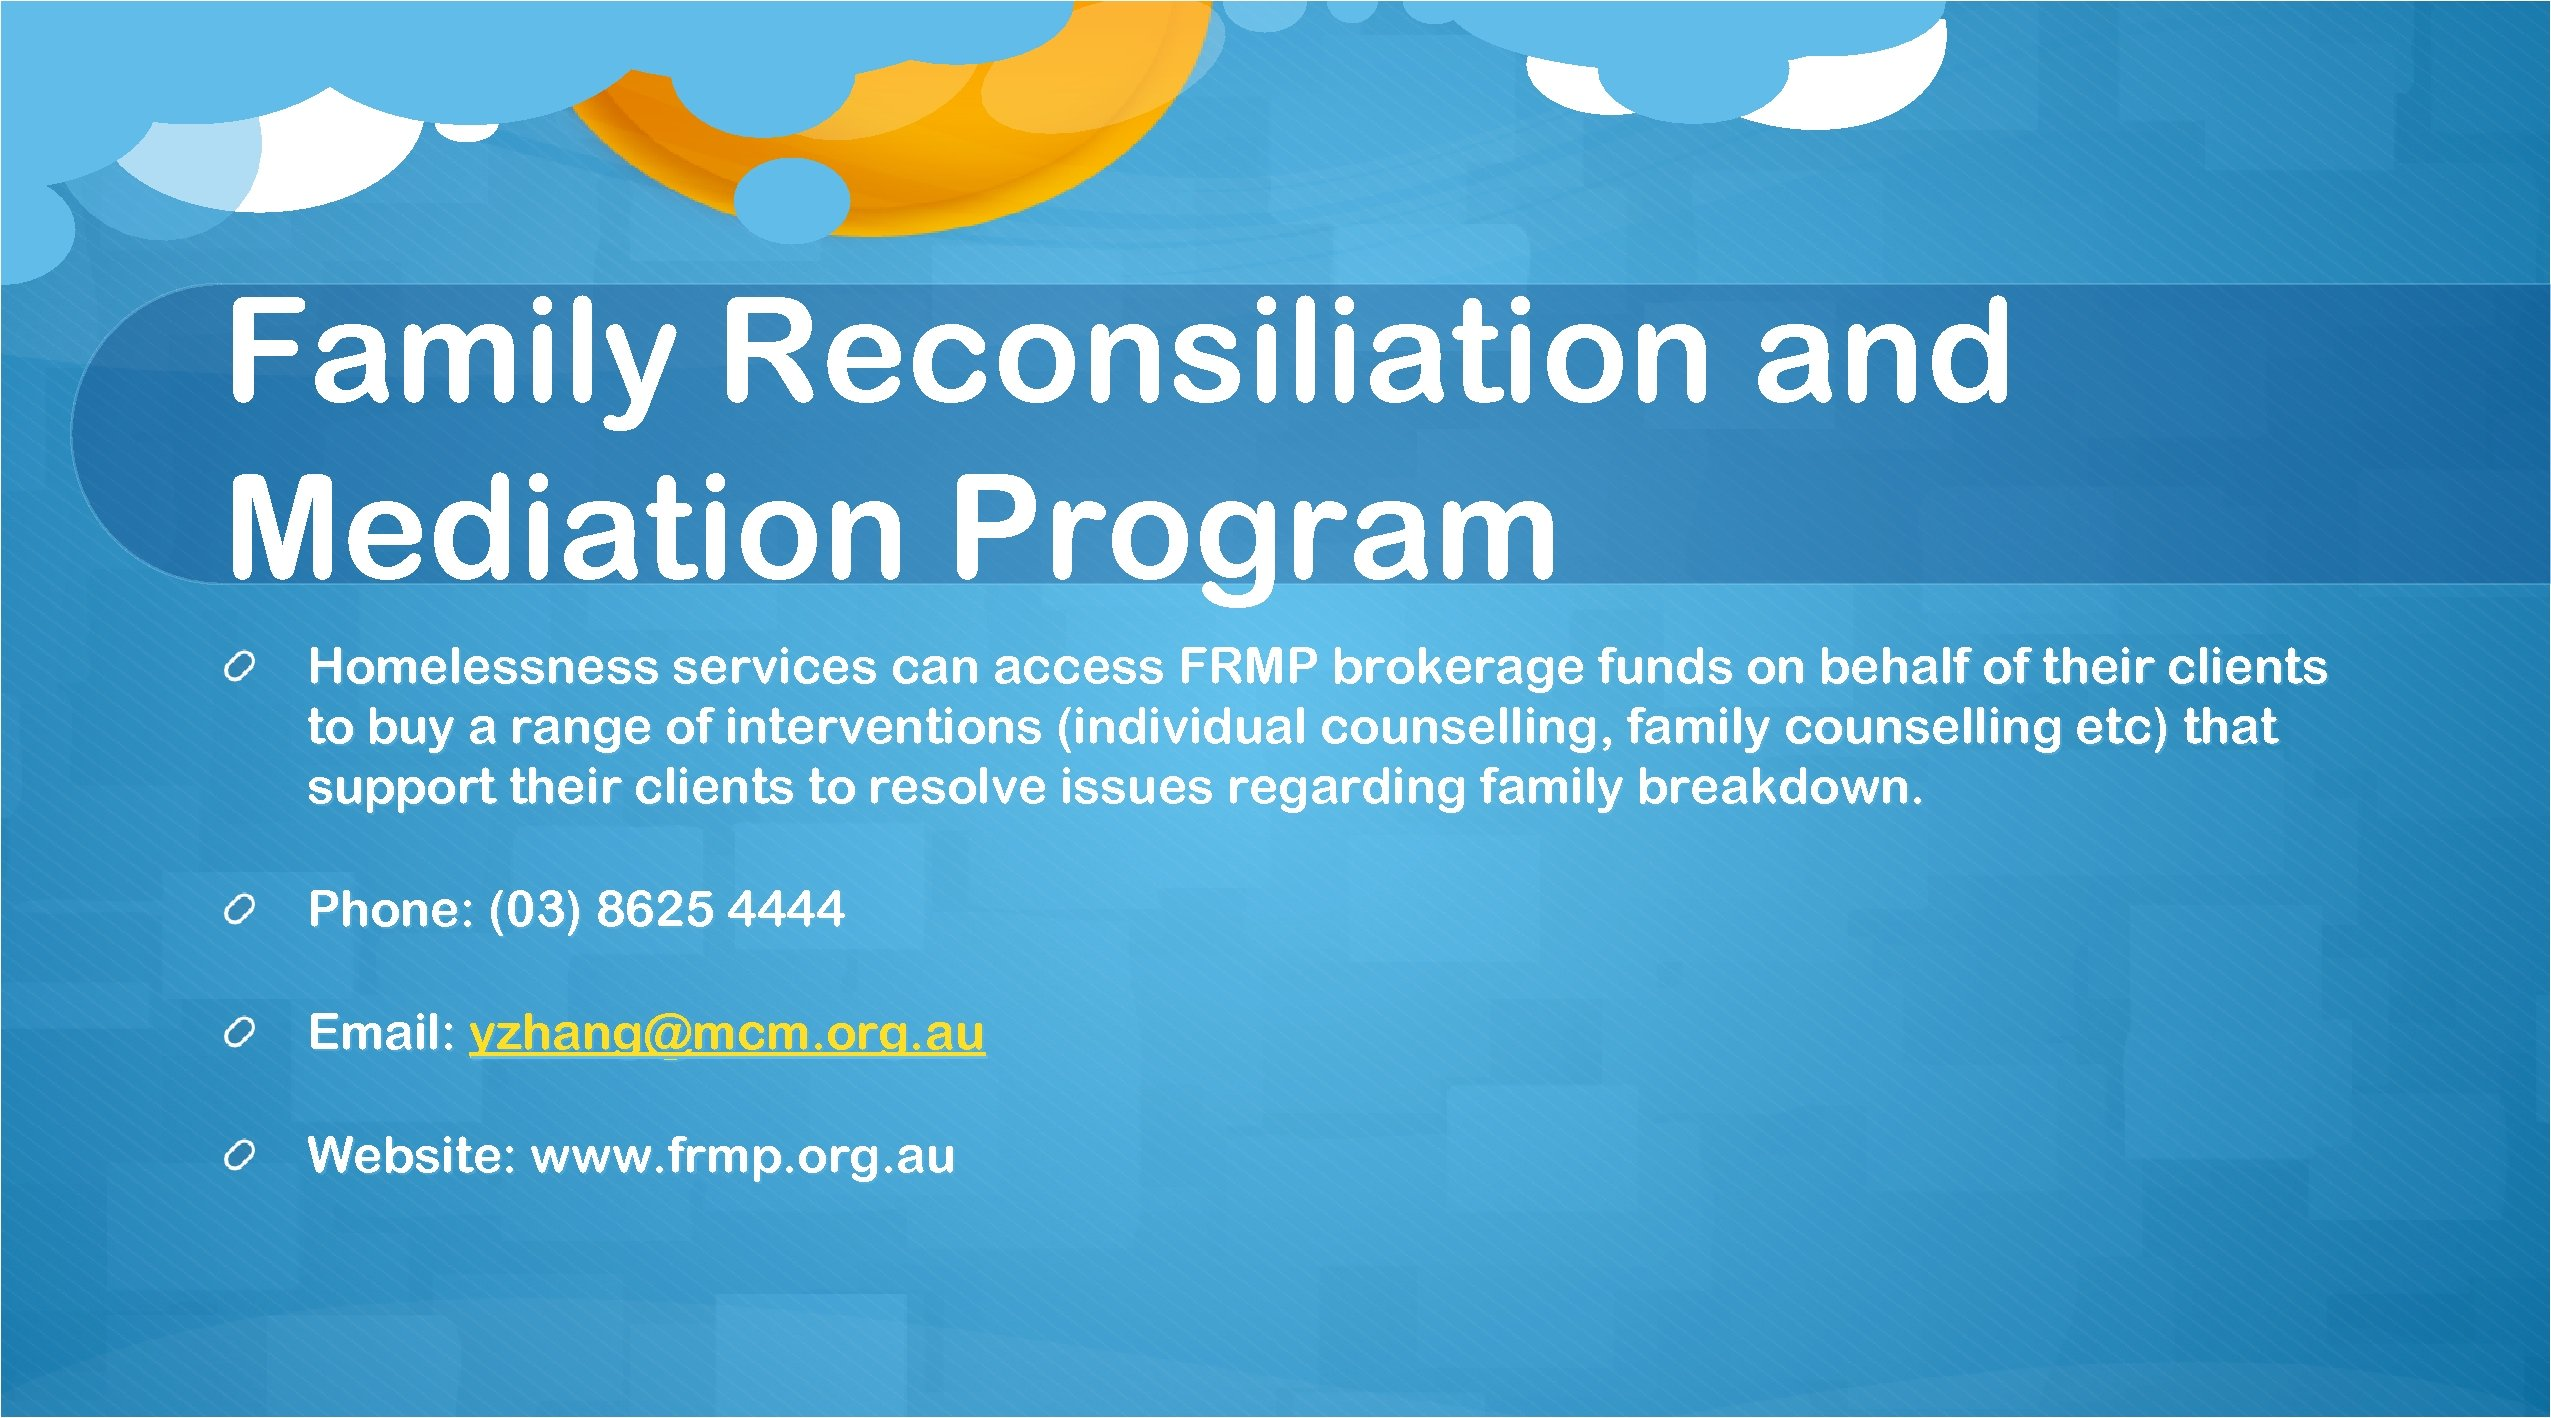 Family Reconsiliation and Mediation Program Homelessness services can access FRMP brokerage funds on behalf